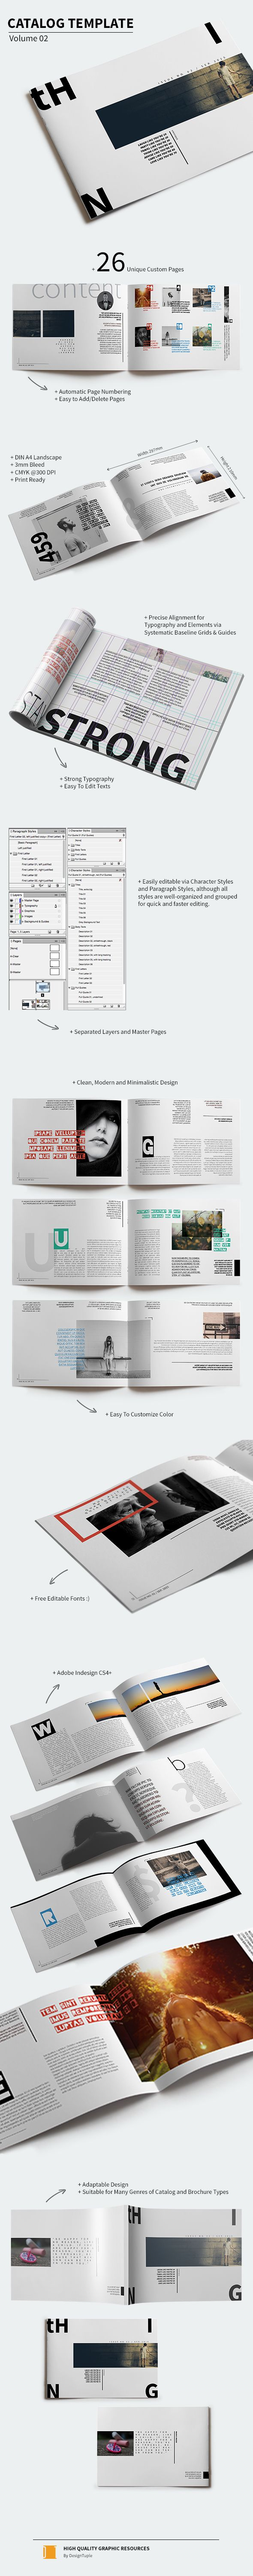 A clean, modern and minimalistic catalog template designed primarily for any type of catalog or brochure. The template consists of 26 unique custom pages including rear cover and front cover pages and can suit many genres of catalog and brochure types suc…                                                                                                                                                                                 Más